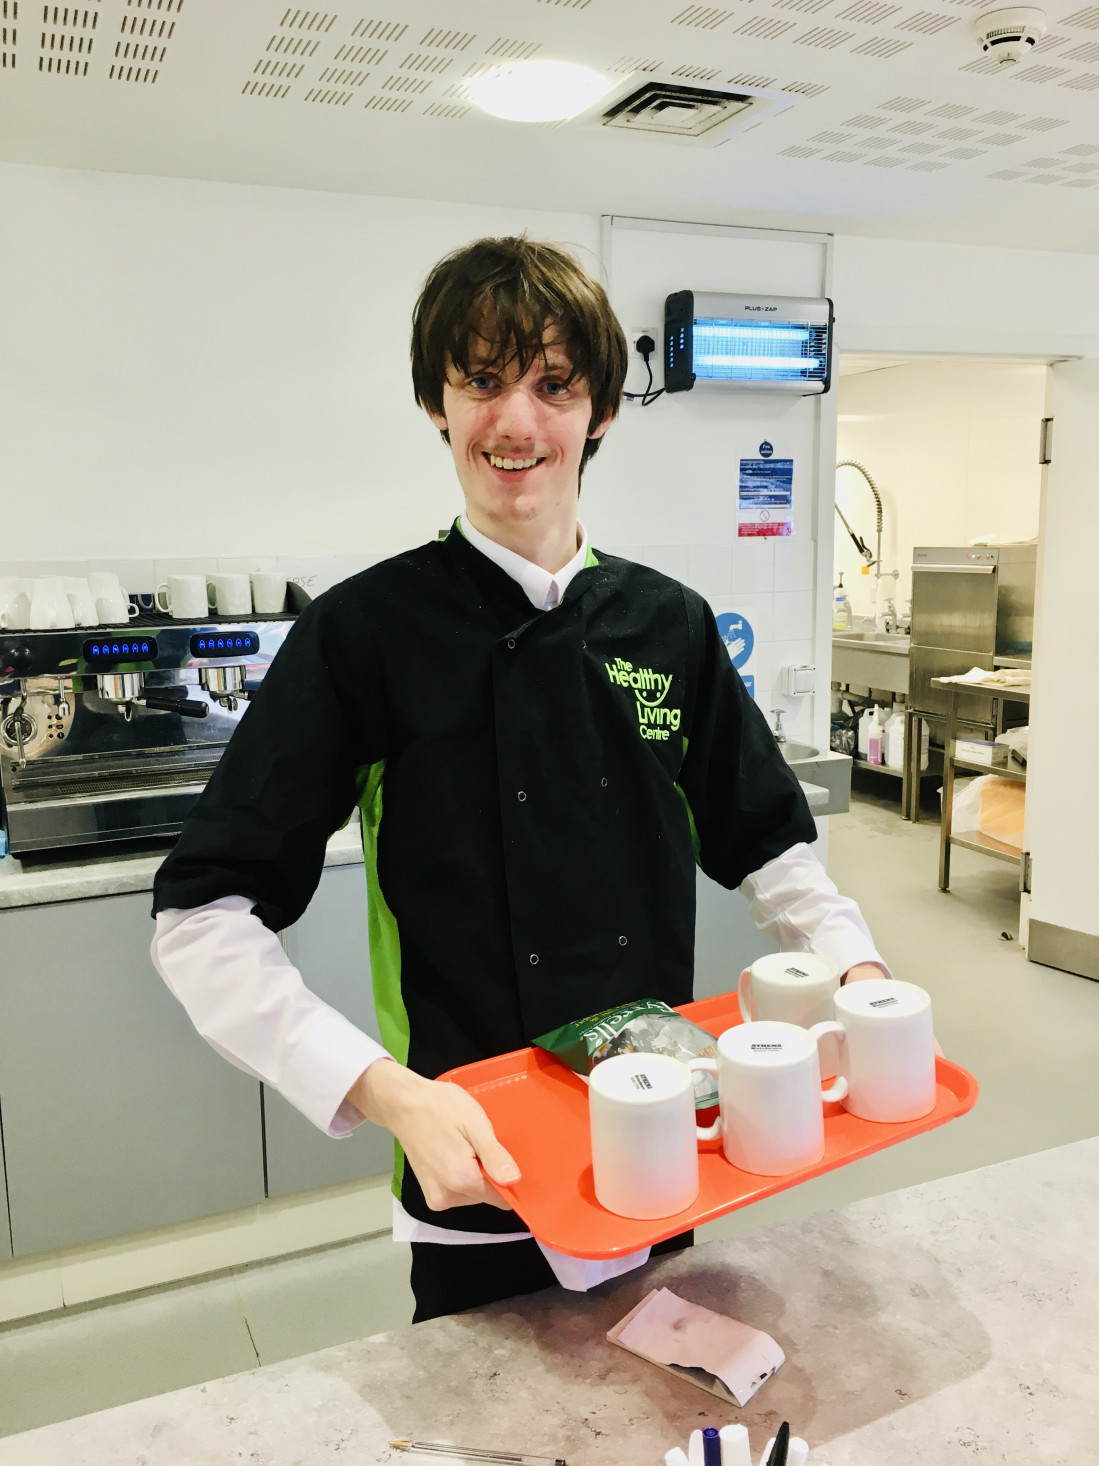 Lee's work experience at the Healthy Living Centre Community Café